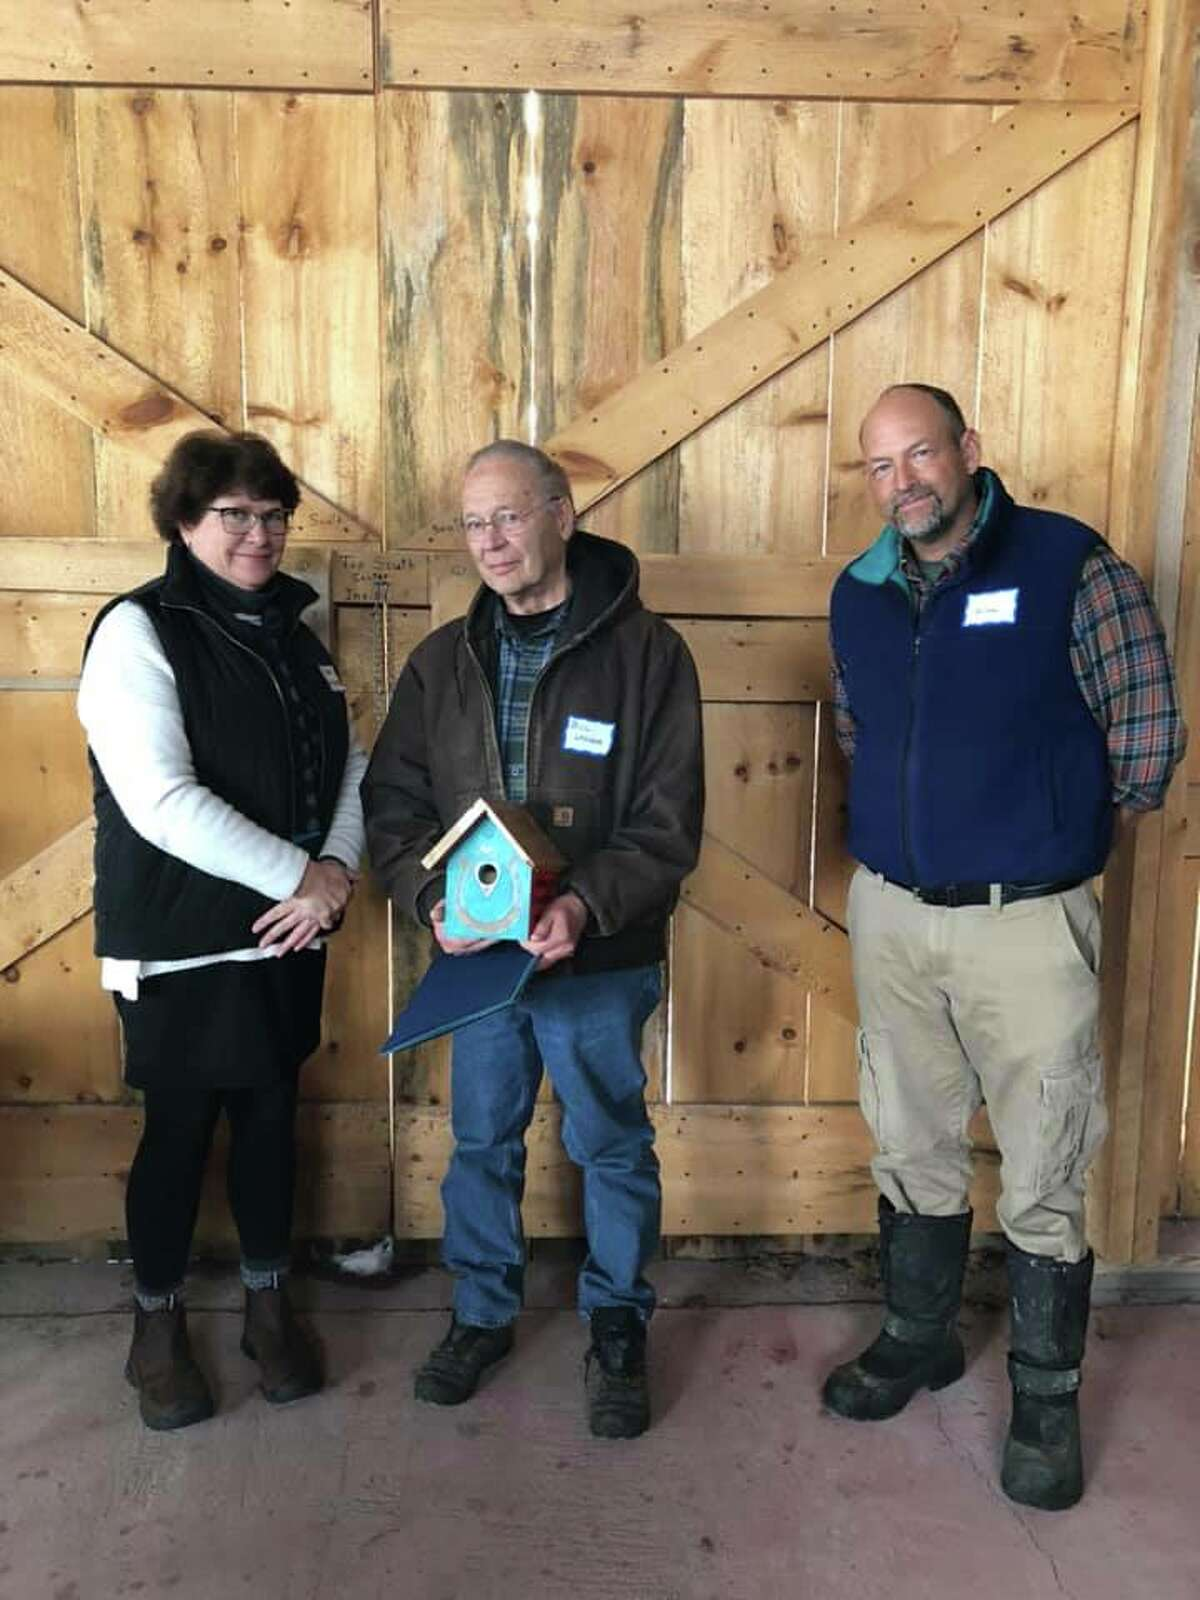 From left, Sue Ginouves, Bill Lasher and Saratoga PLAN chair Will Orthwein celebrate Conservation Heroes.